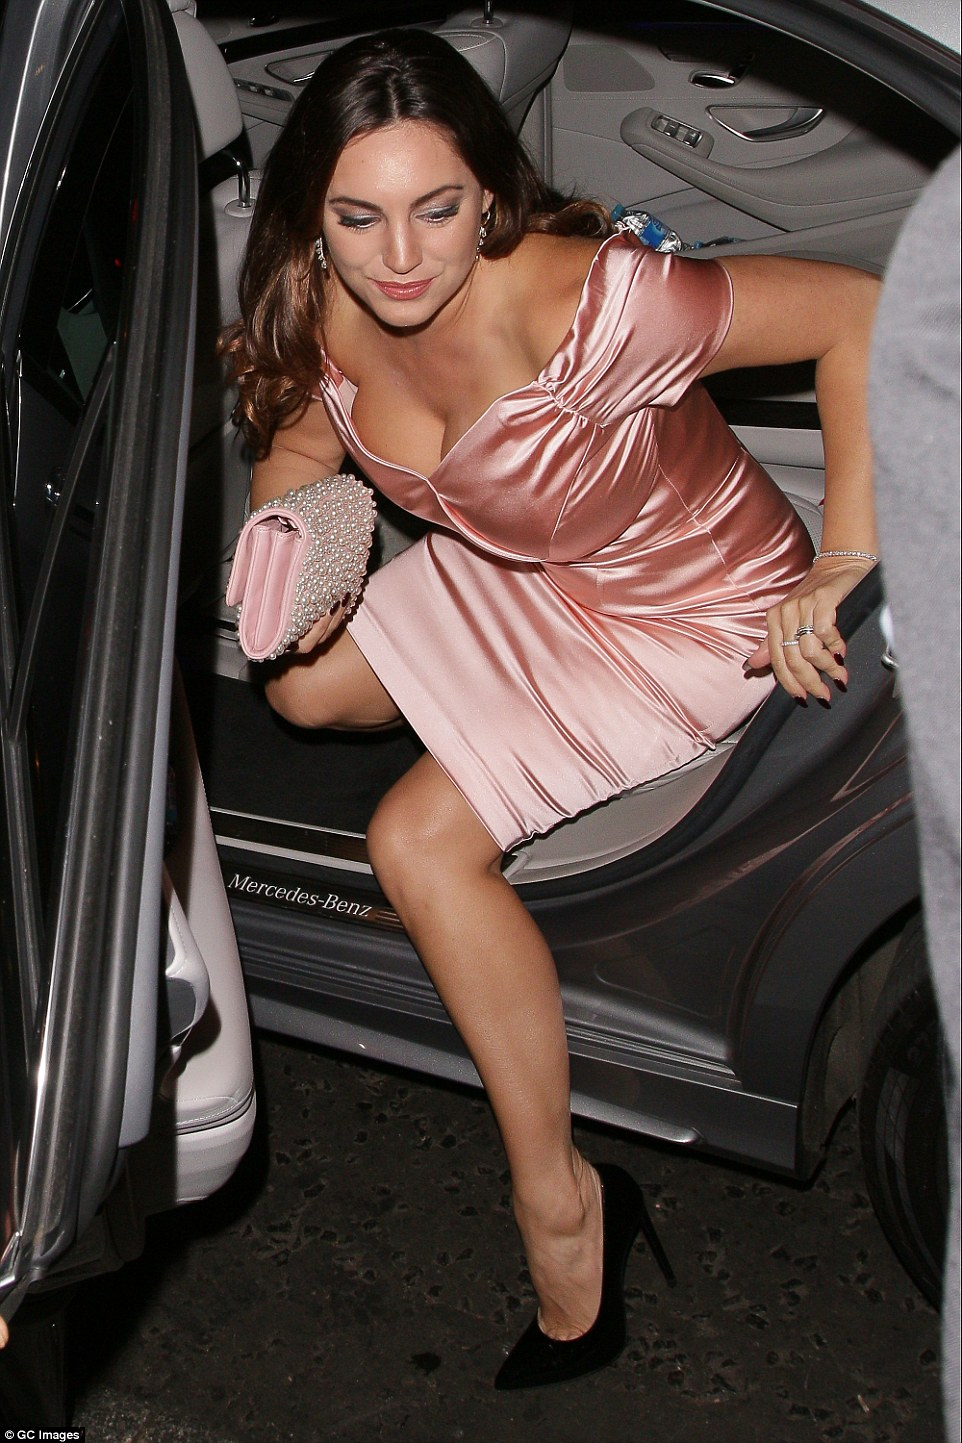 Pretty in pink: Kelly gracefully departed her car showing off her figure as she climbed out